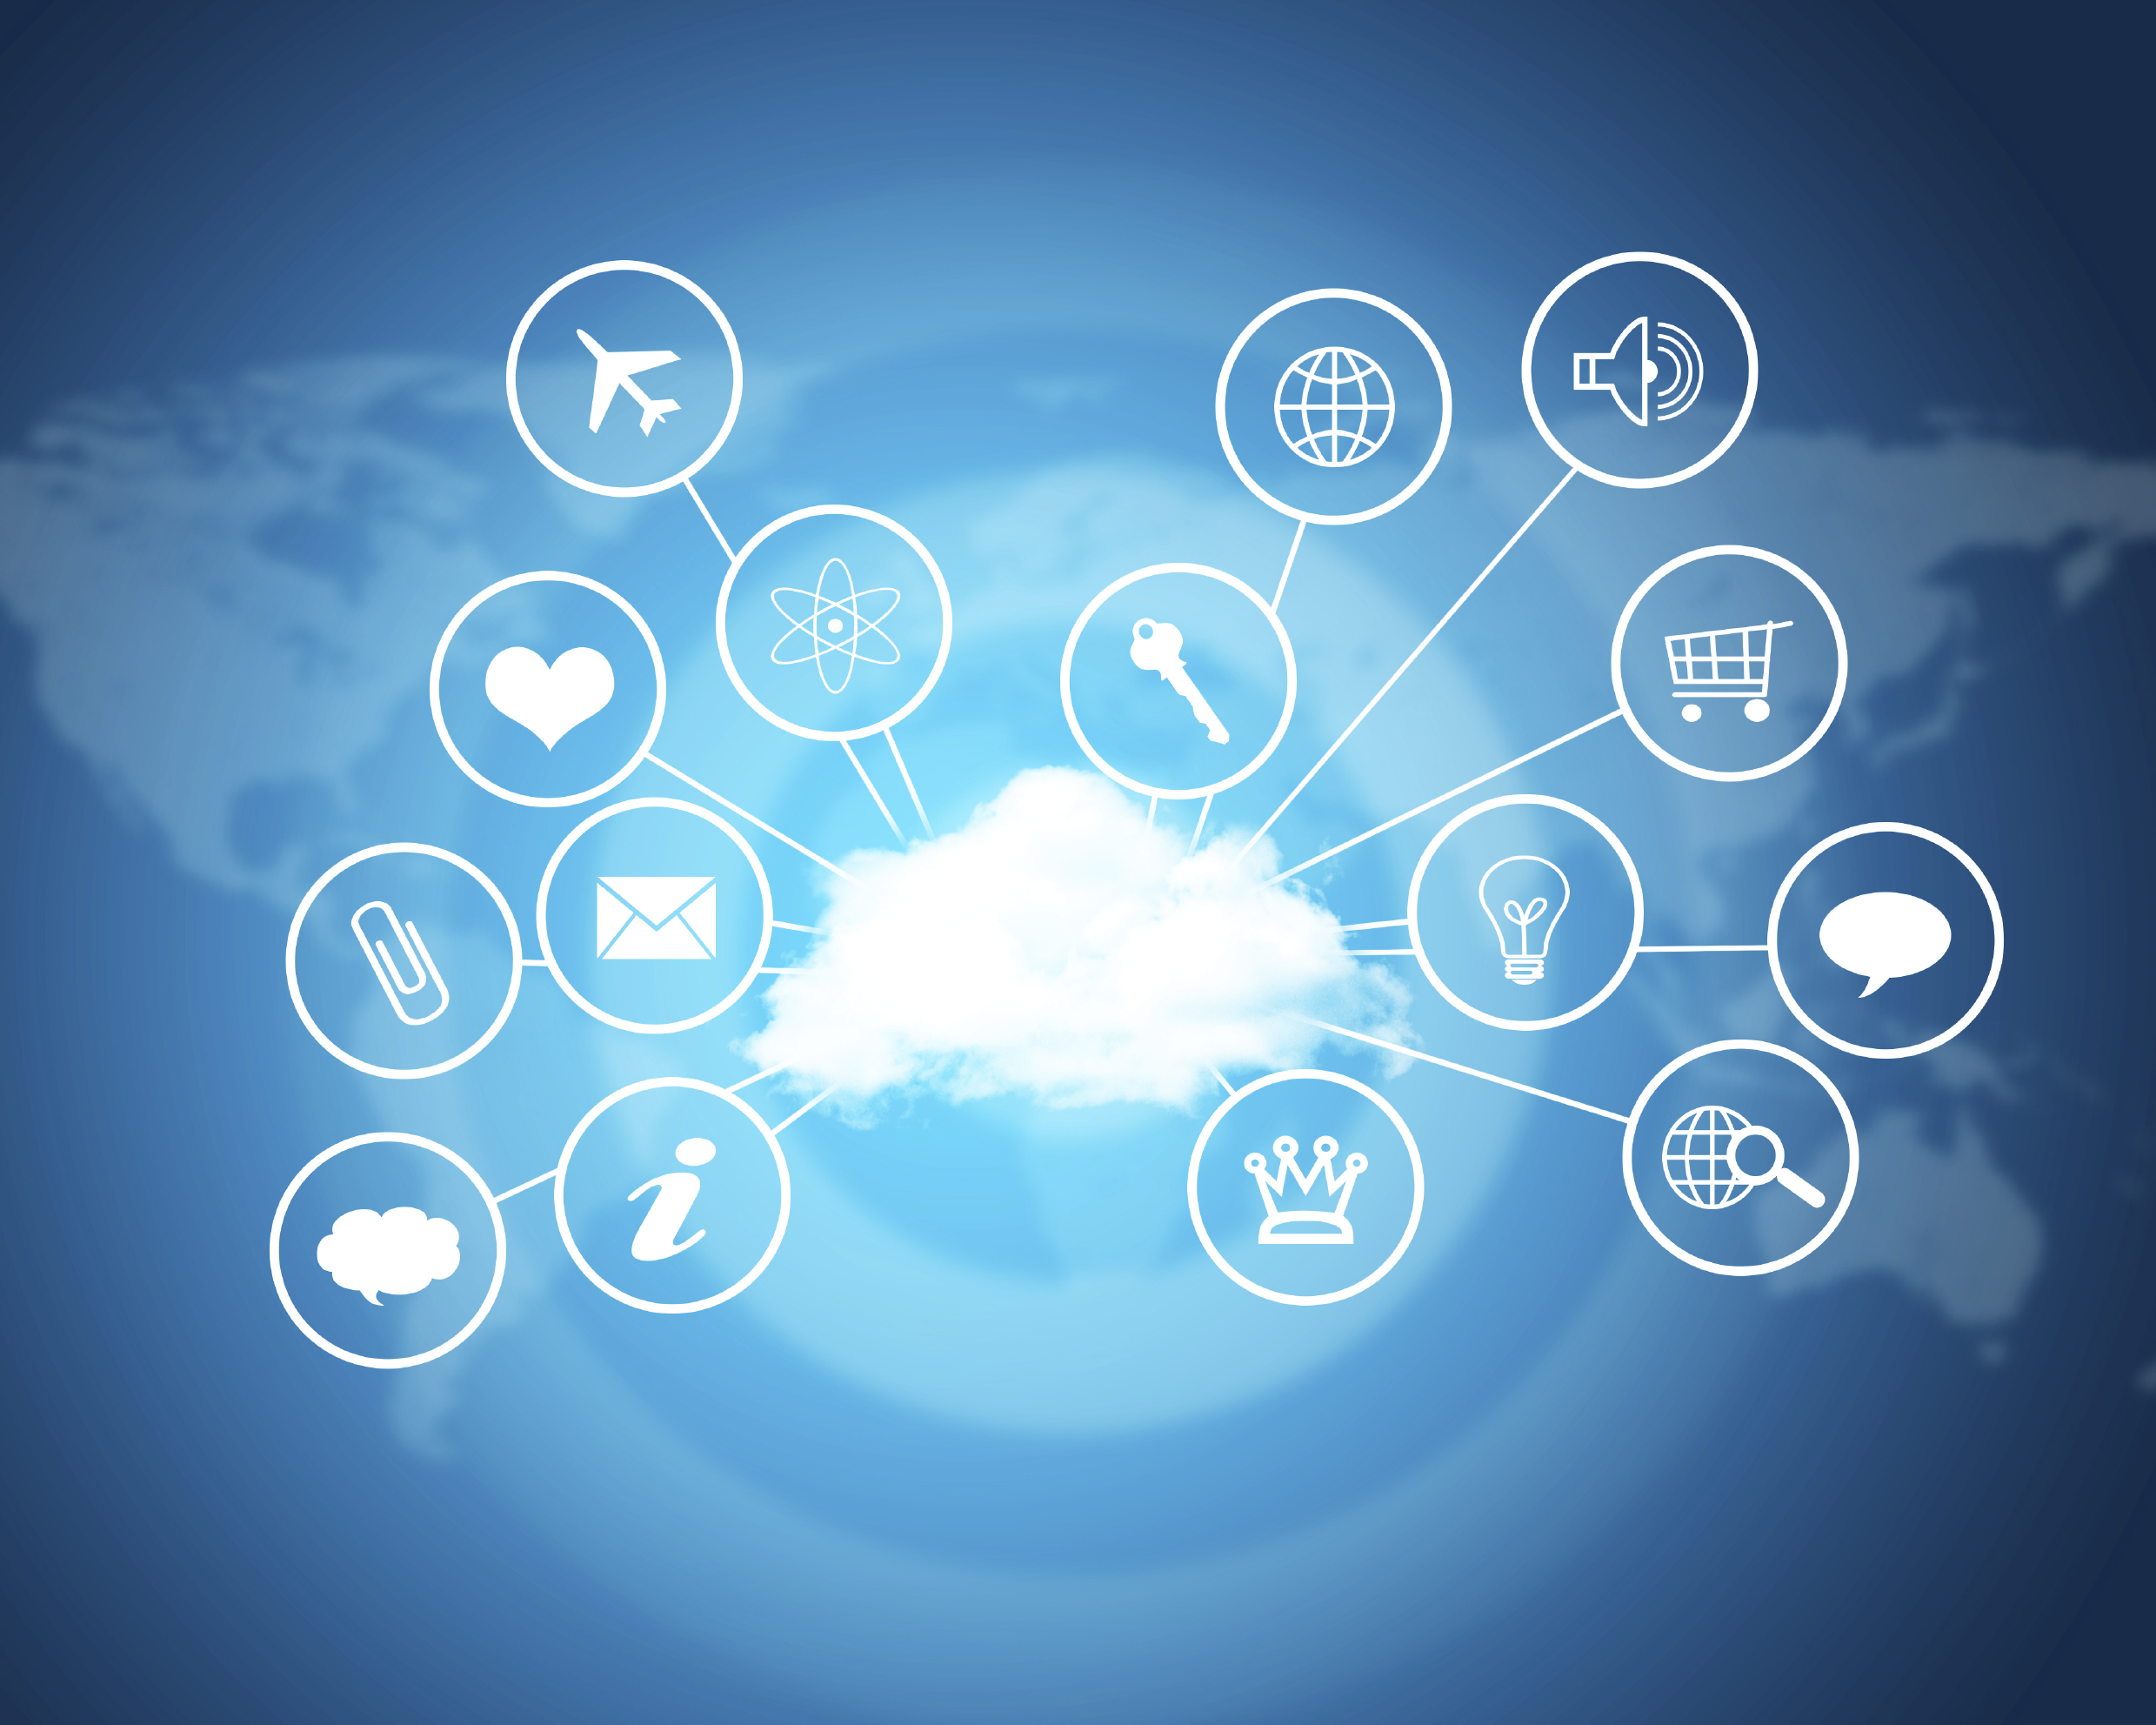 Cloud with computer icons. Technology concept